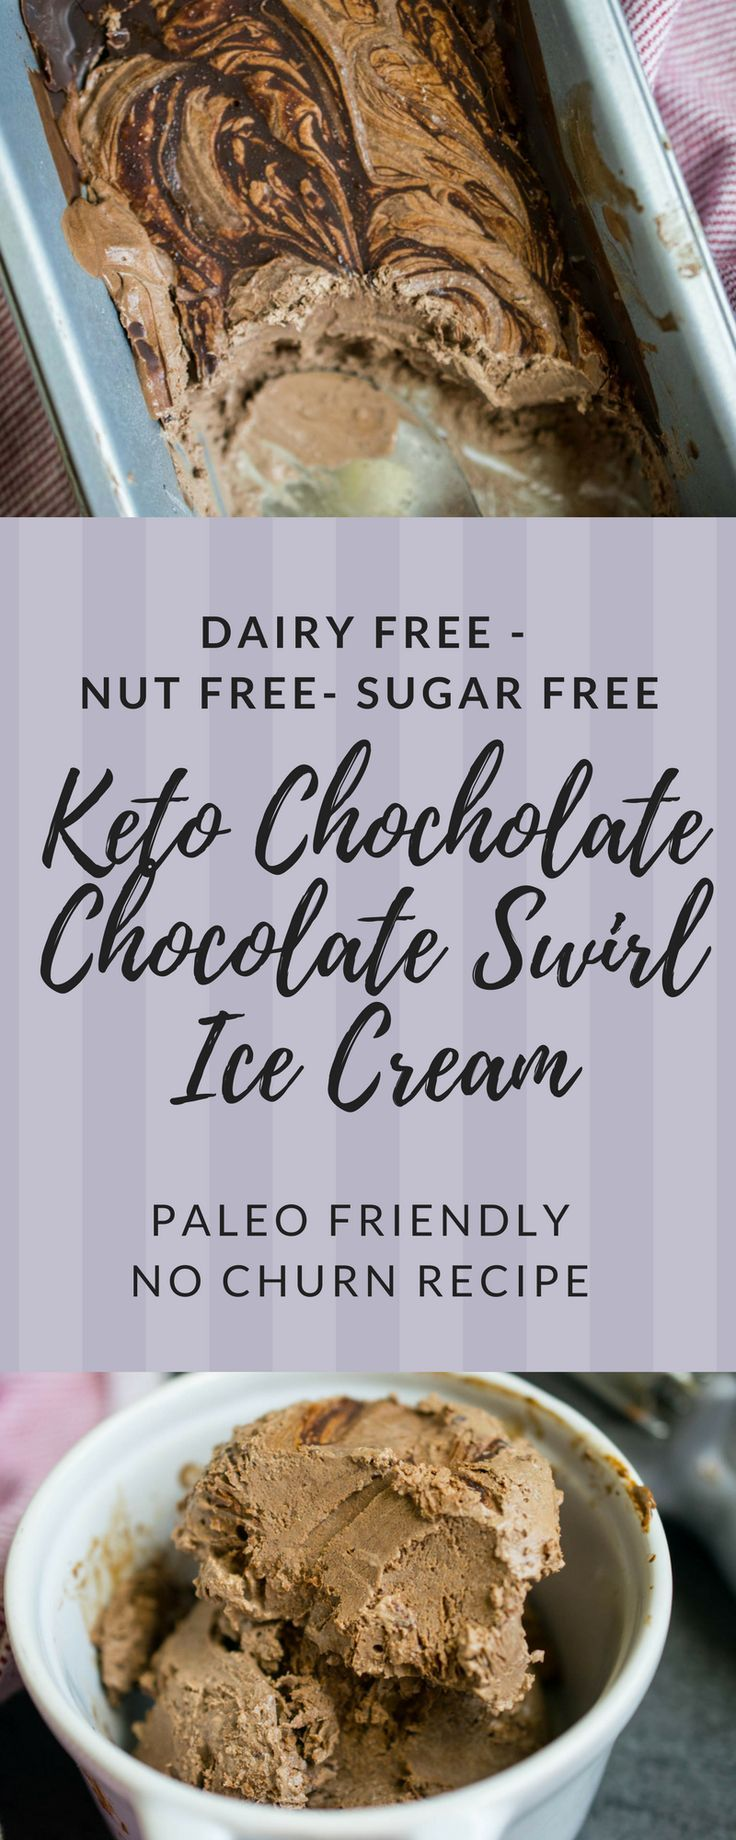 Chocolate Chocolate Swirl Dairy Free Keto Ice Cream (Nut Free, Paleo Friendly) • The Castaway Kitchen